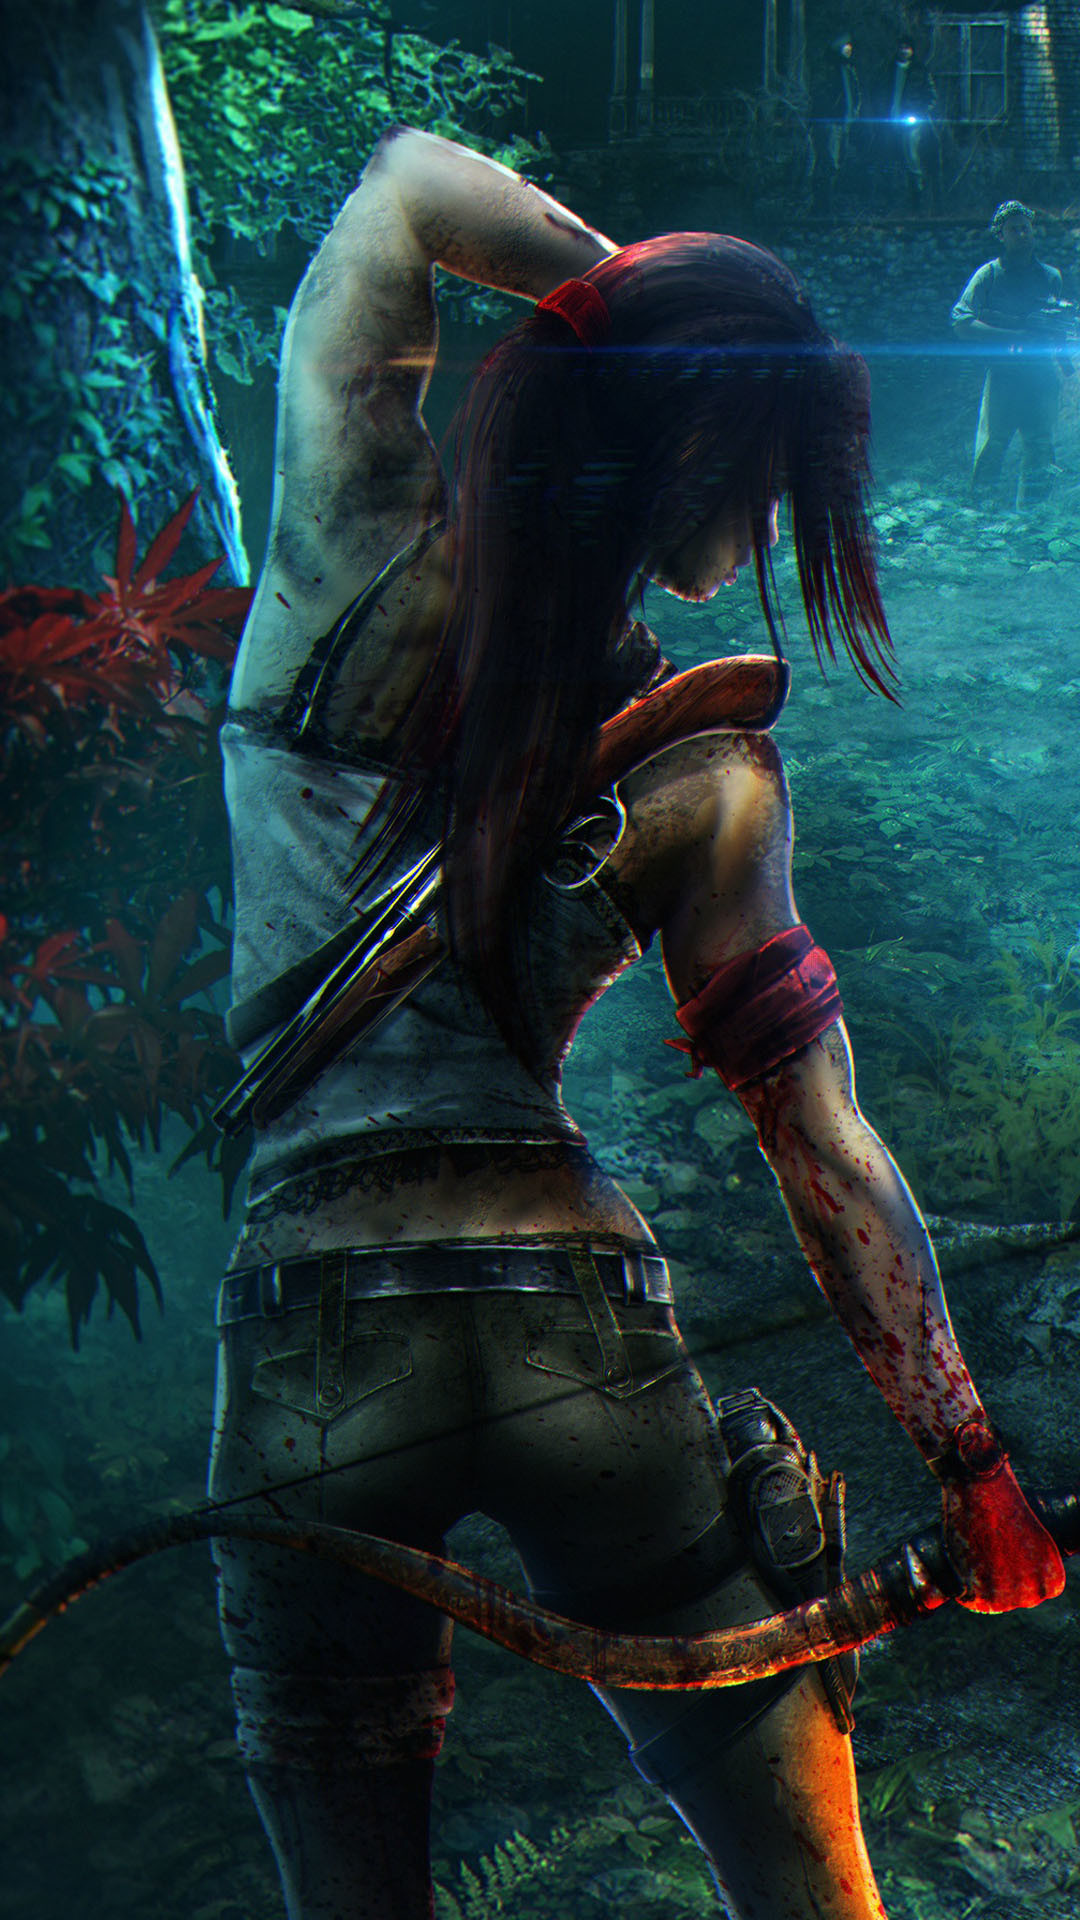 1080x1920 Tomb Raider Quest wallpapers (5 Wallpapers)